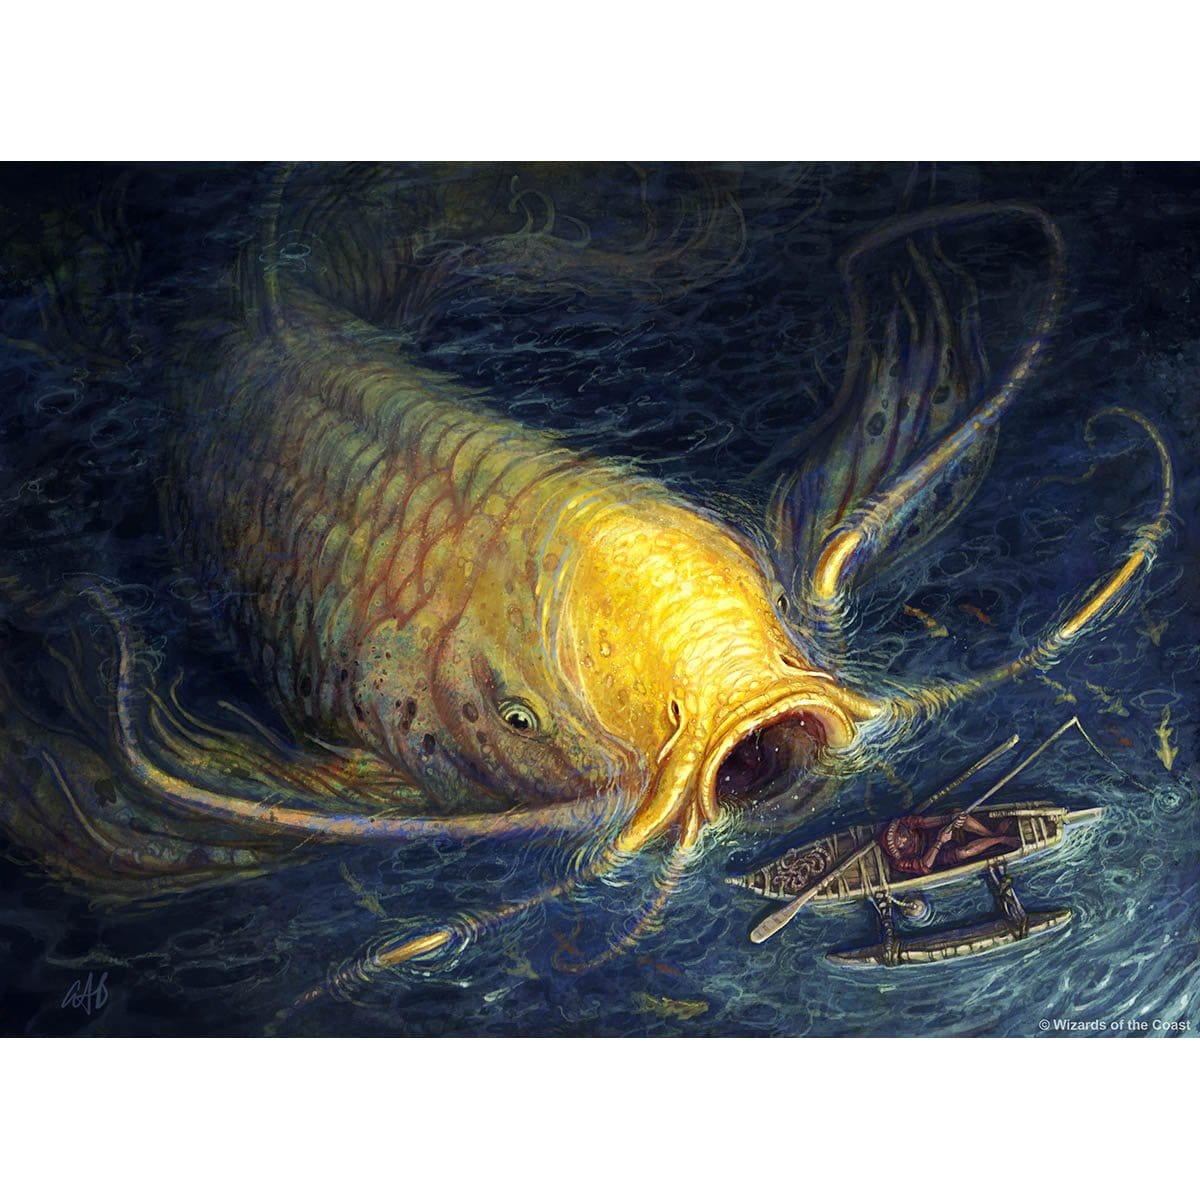 Ancient Carp Print - Print - Original Magic Art - Accessories for Magic the Gathering and other card games